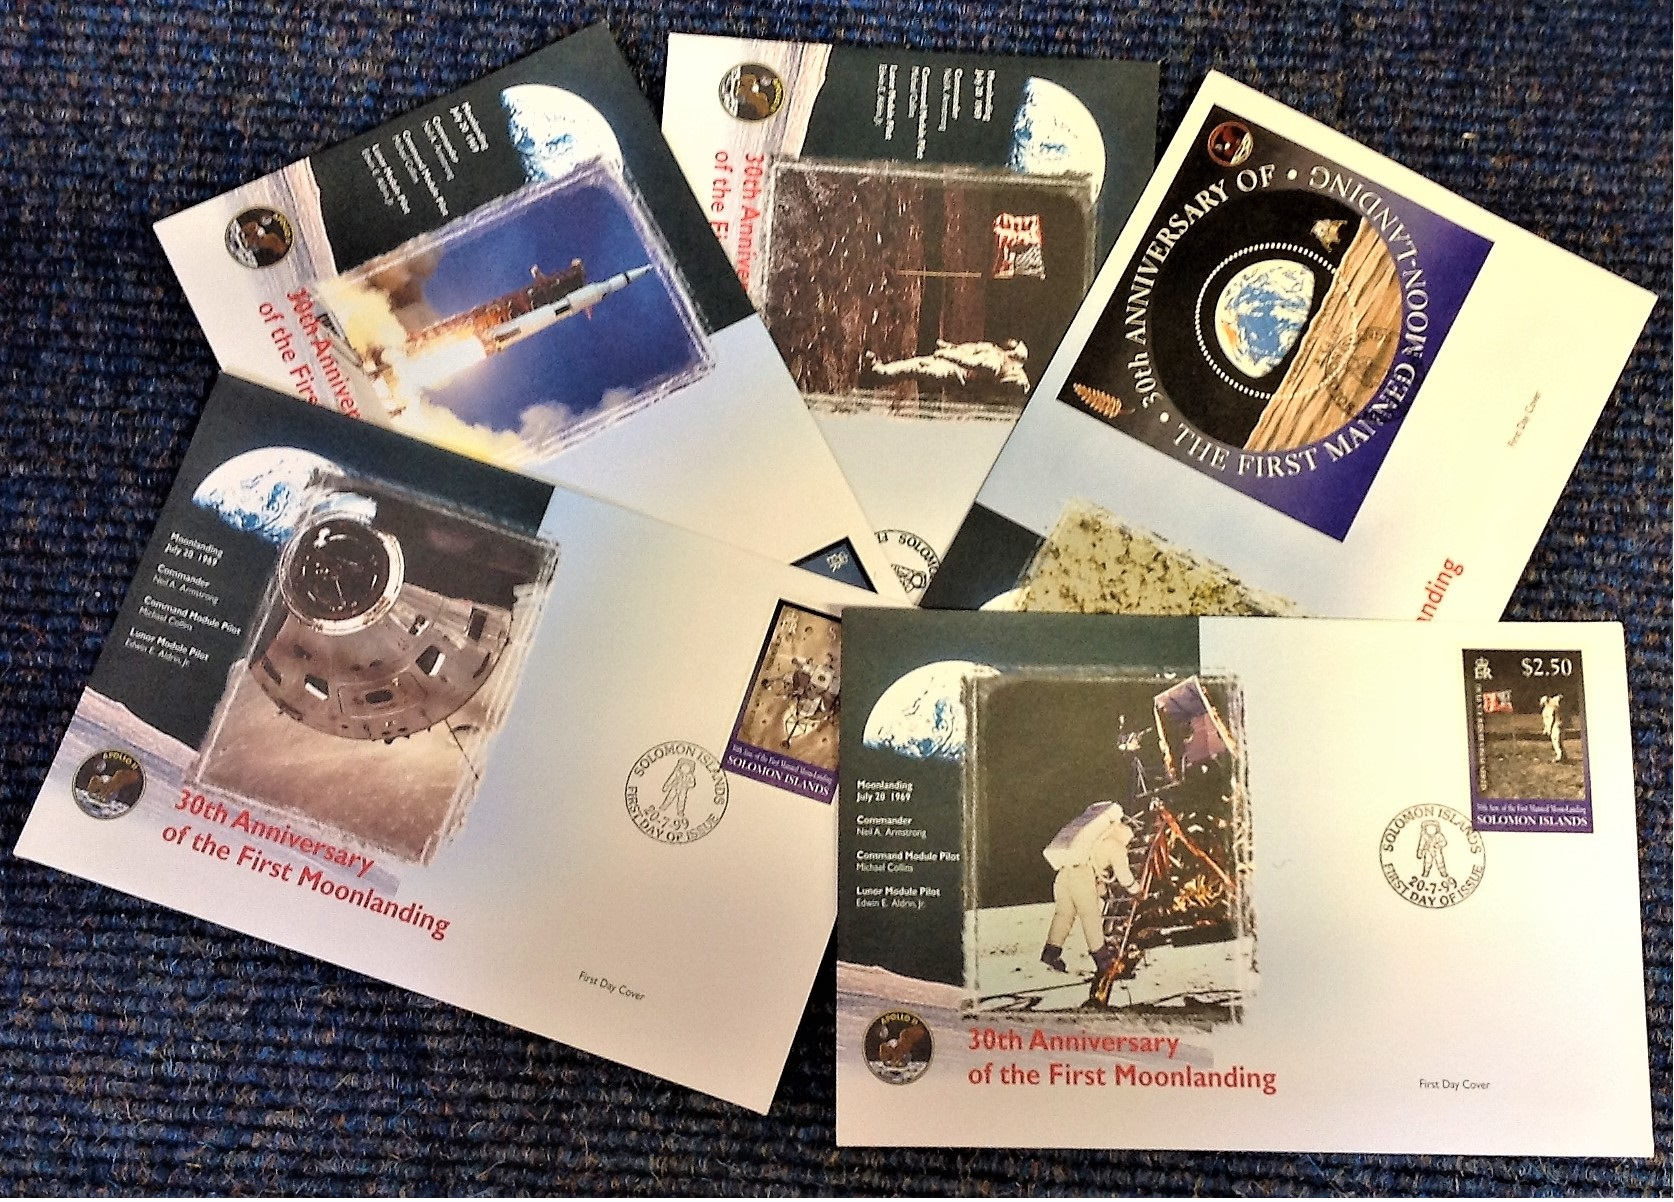 Lot 2 - Space FDC collection 5 superb 30th Anniversary of the Apollo II First Moonlanding commemorative